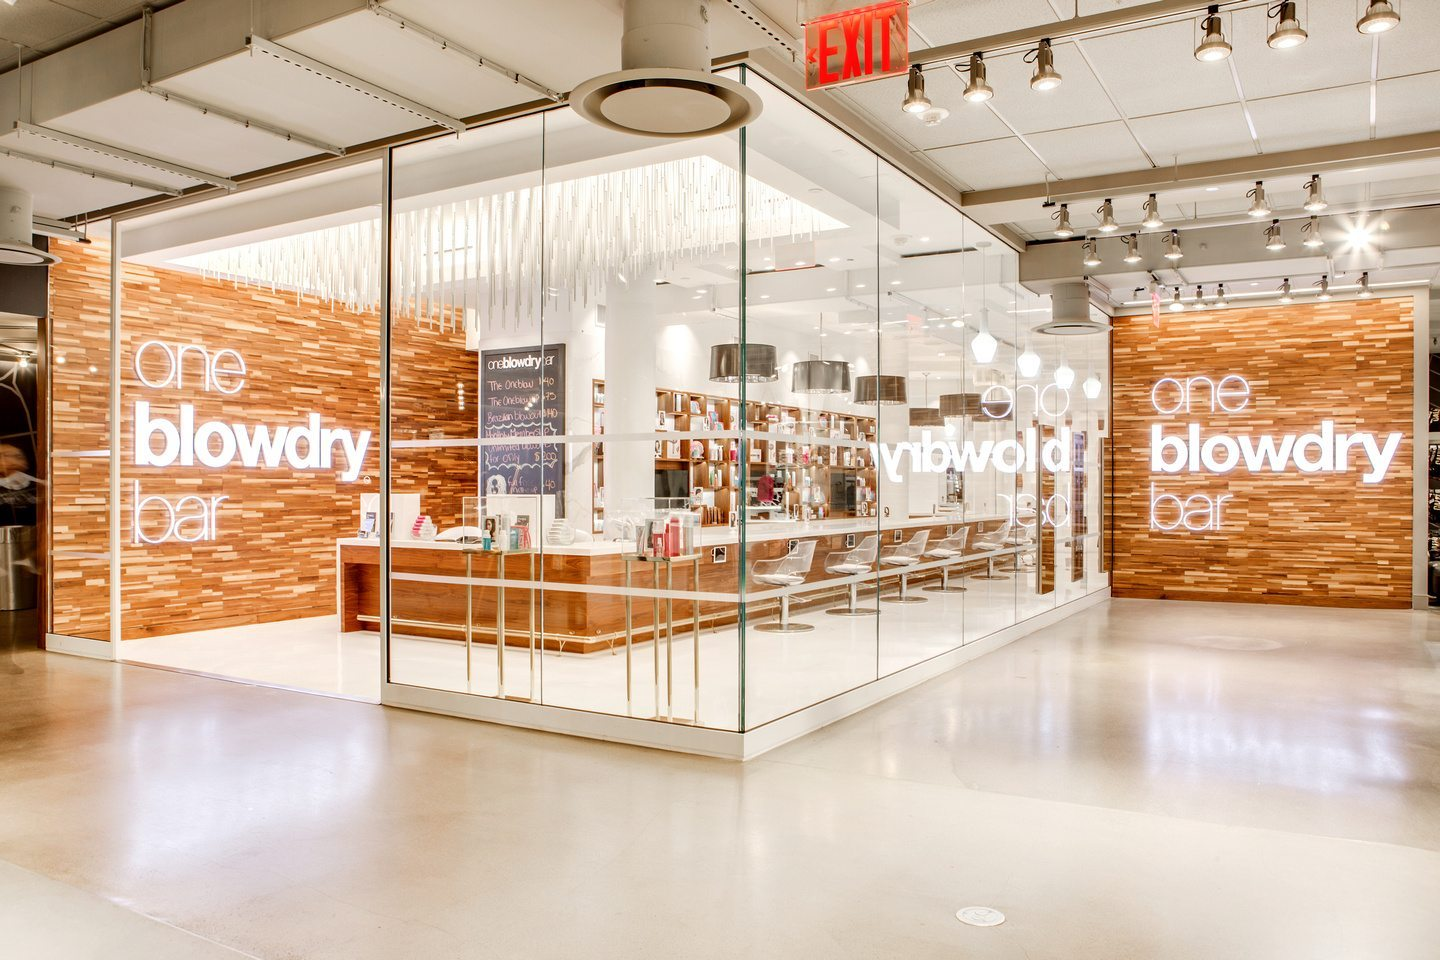 Macy's Herald Square Blow Dry Bar on Macy's One Below Level - oneblowdrybar